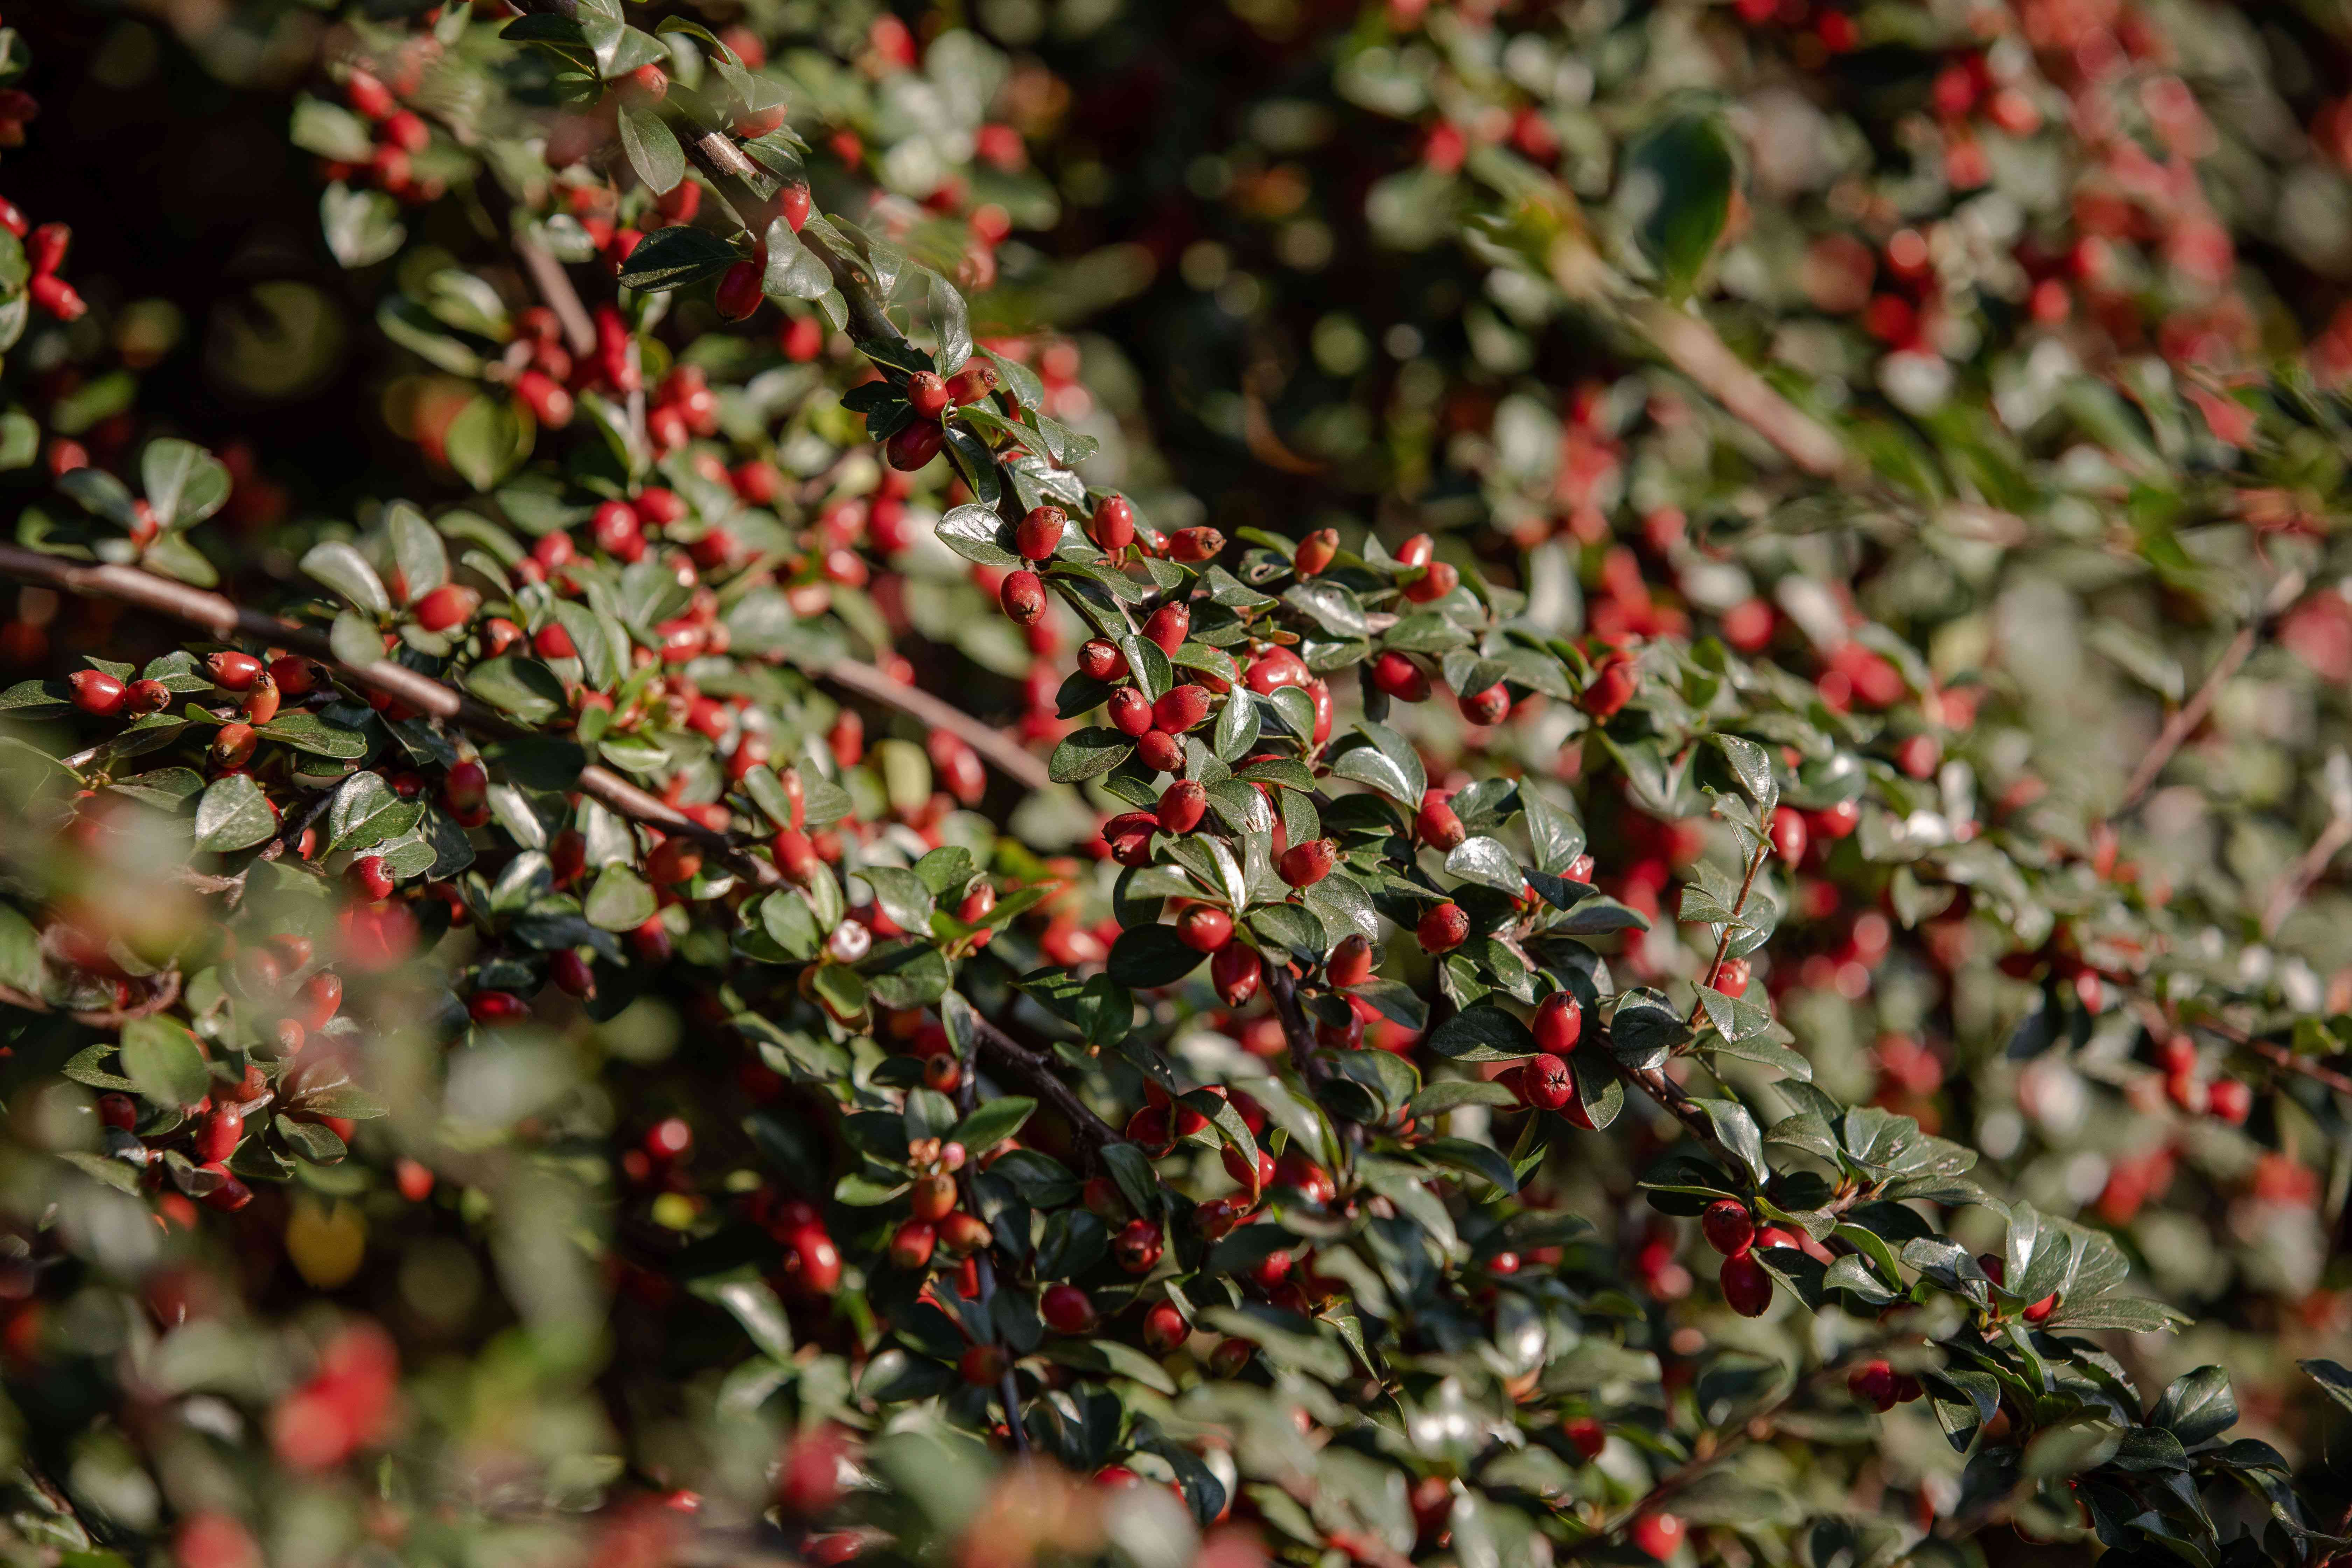 Rockspray cotoneaster plant with small red berries on branches with waxy green leaves